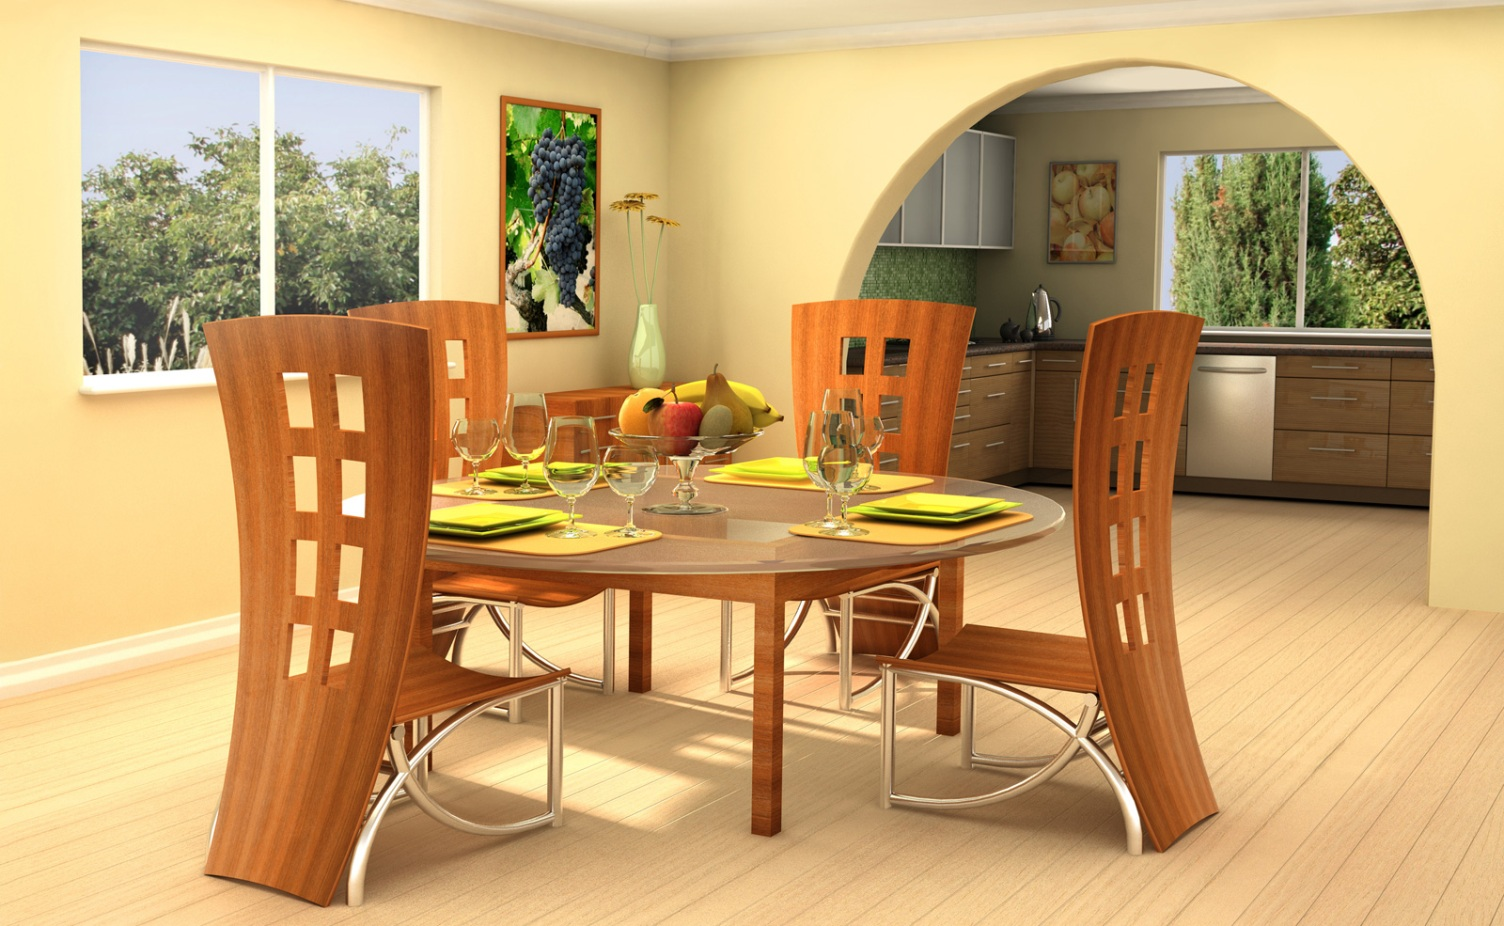 Style Kitchen Table And Chairs